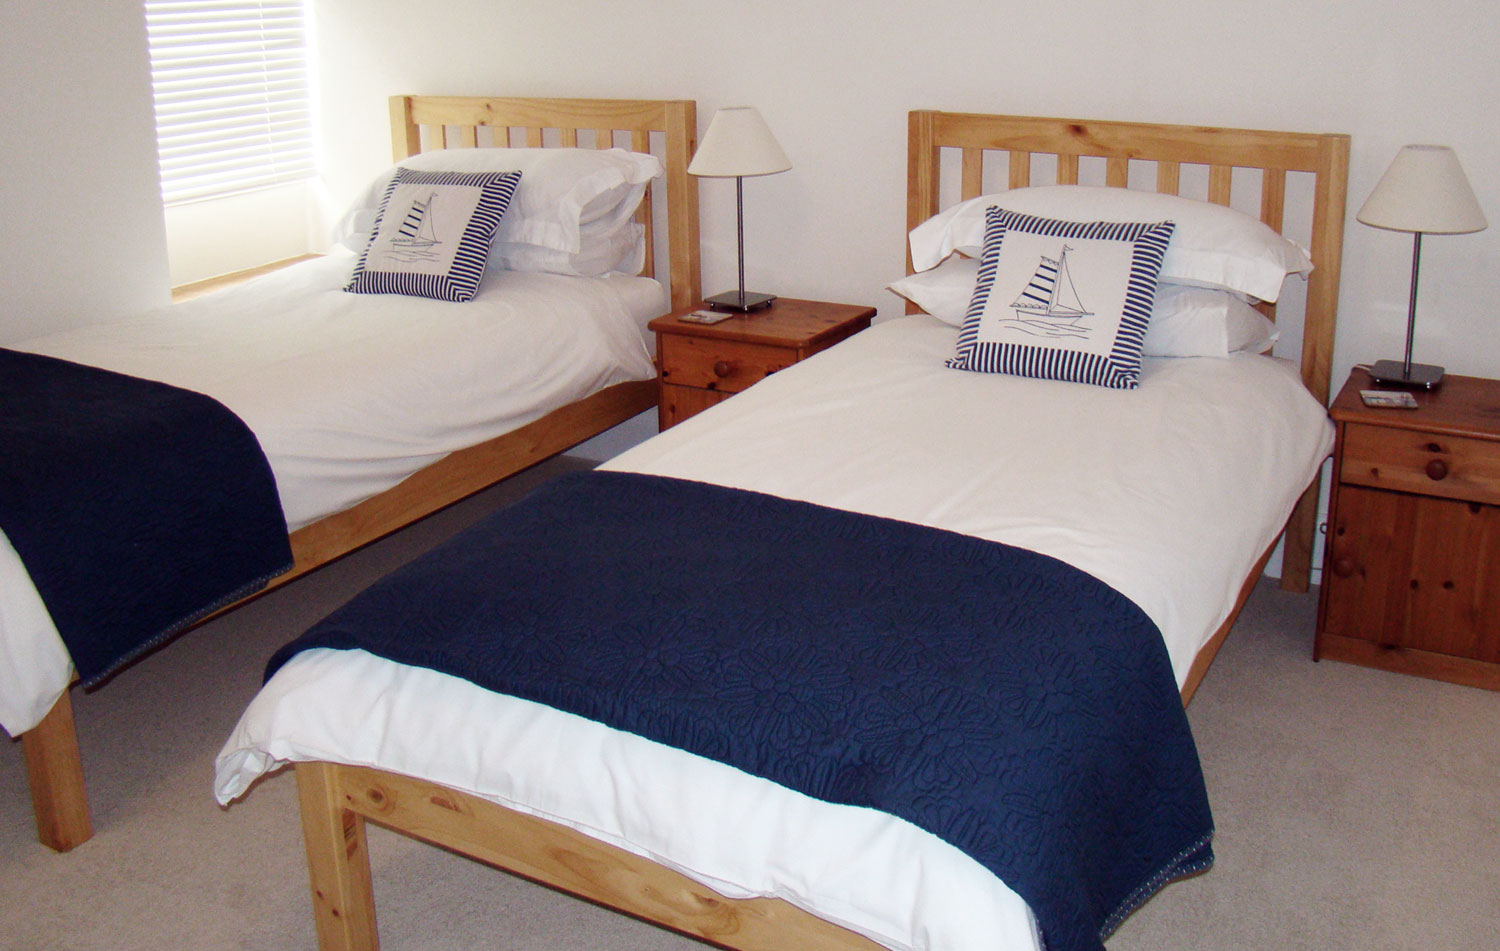 The Standard Twin Room at Surf Haven Bed & Breakfast, Bude, Cornwall